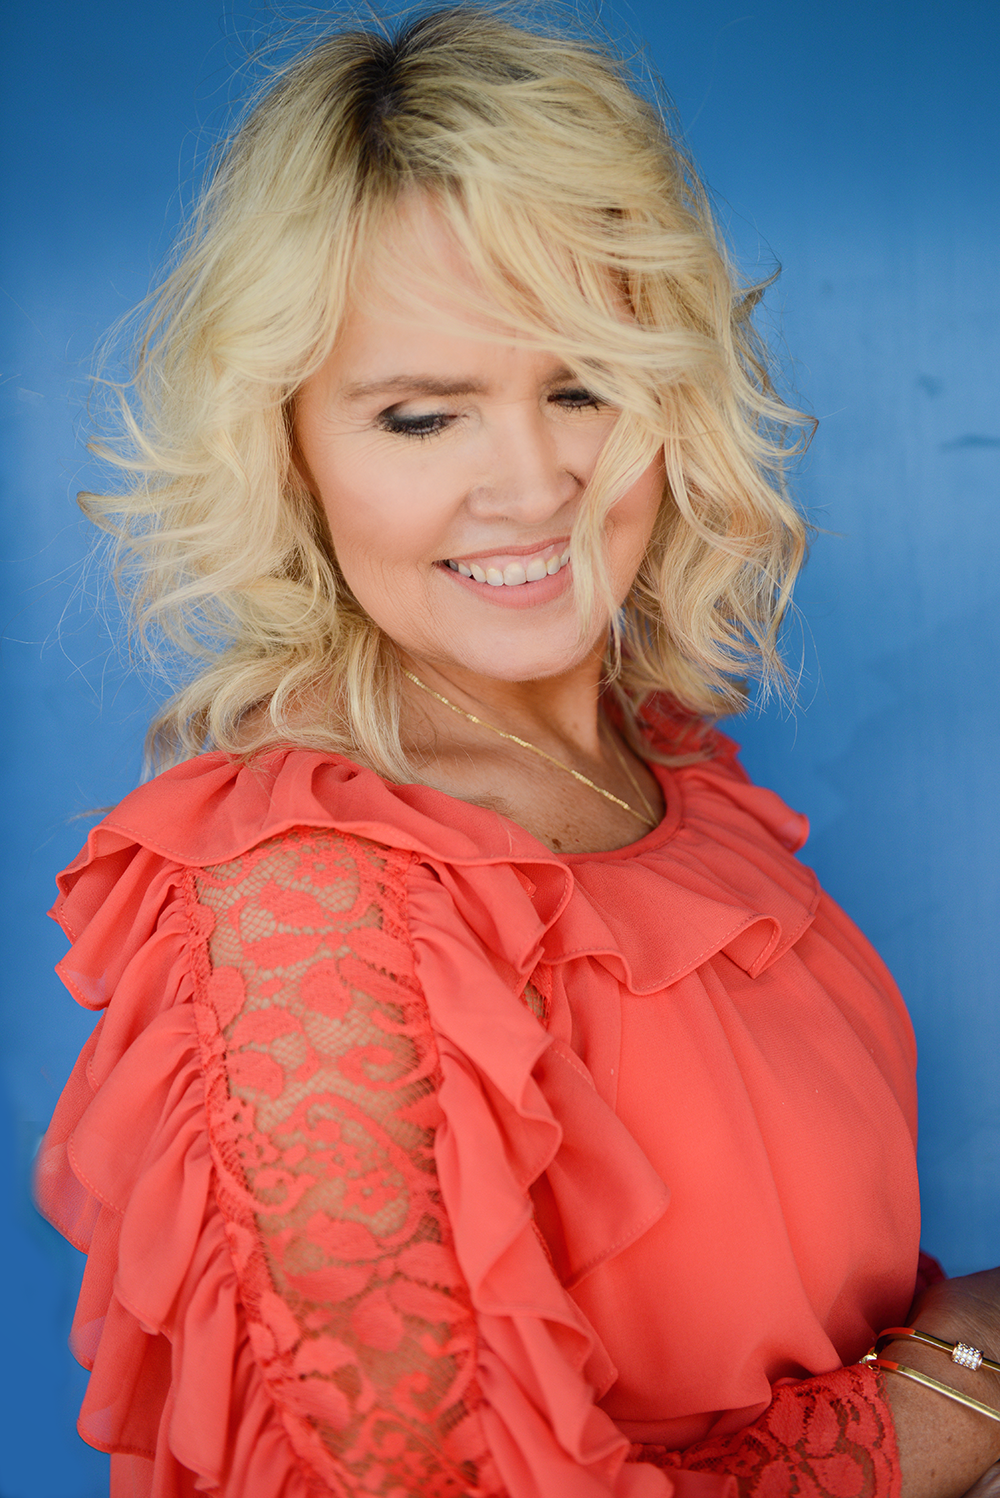 lewisville-photography-portraits-glamour-contrast